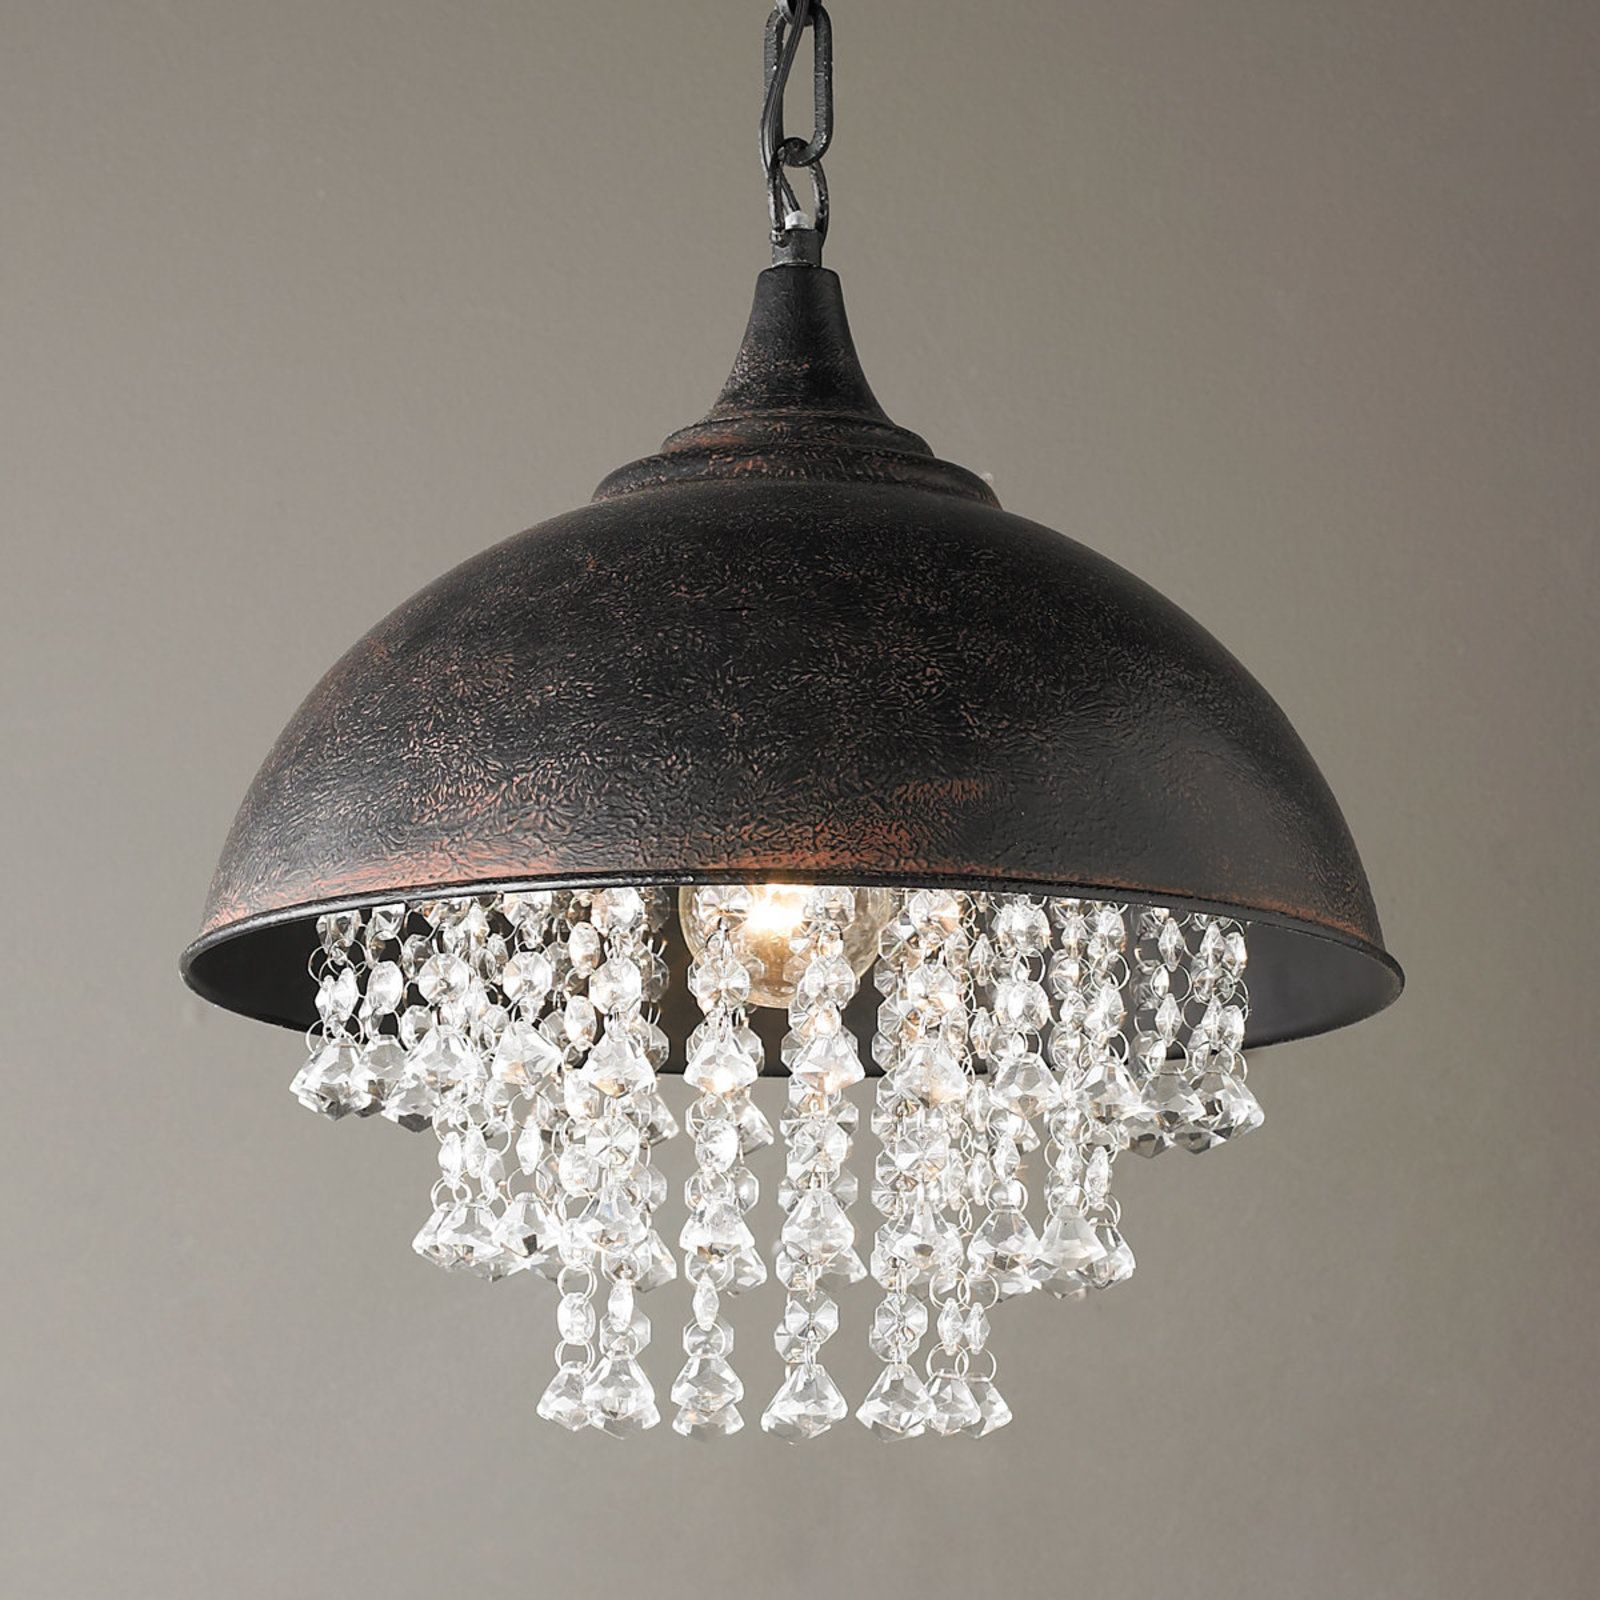 Metal Dome Pendant With Crystals | Elissa's Kitchen With Monadnock 1 Light Single Dome Pendants (View 17 of 30)